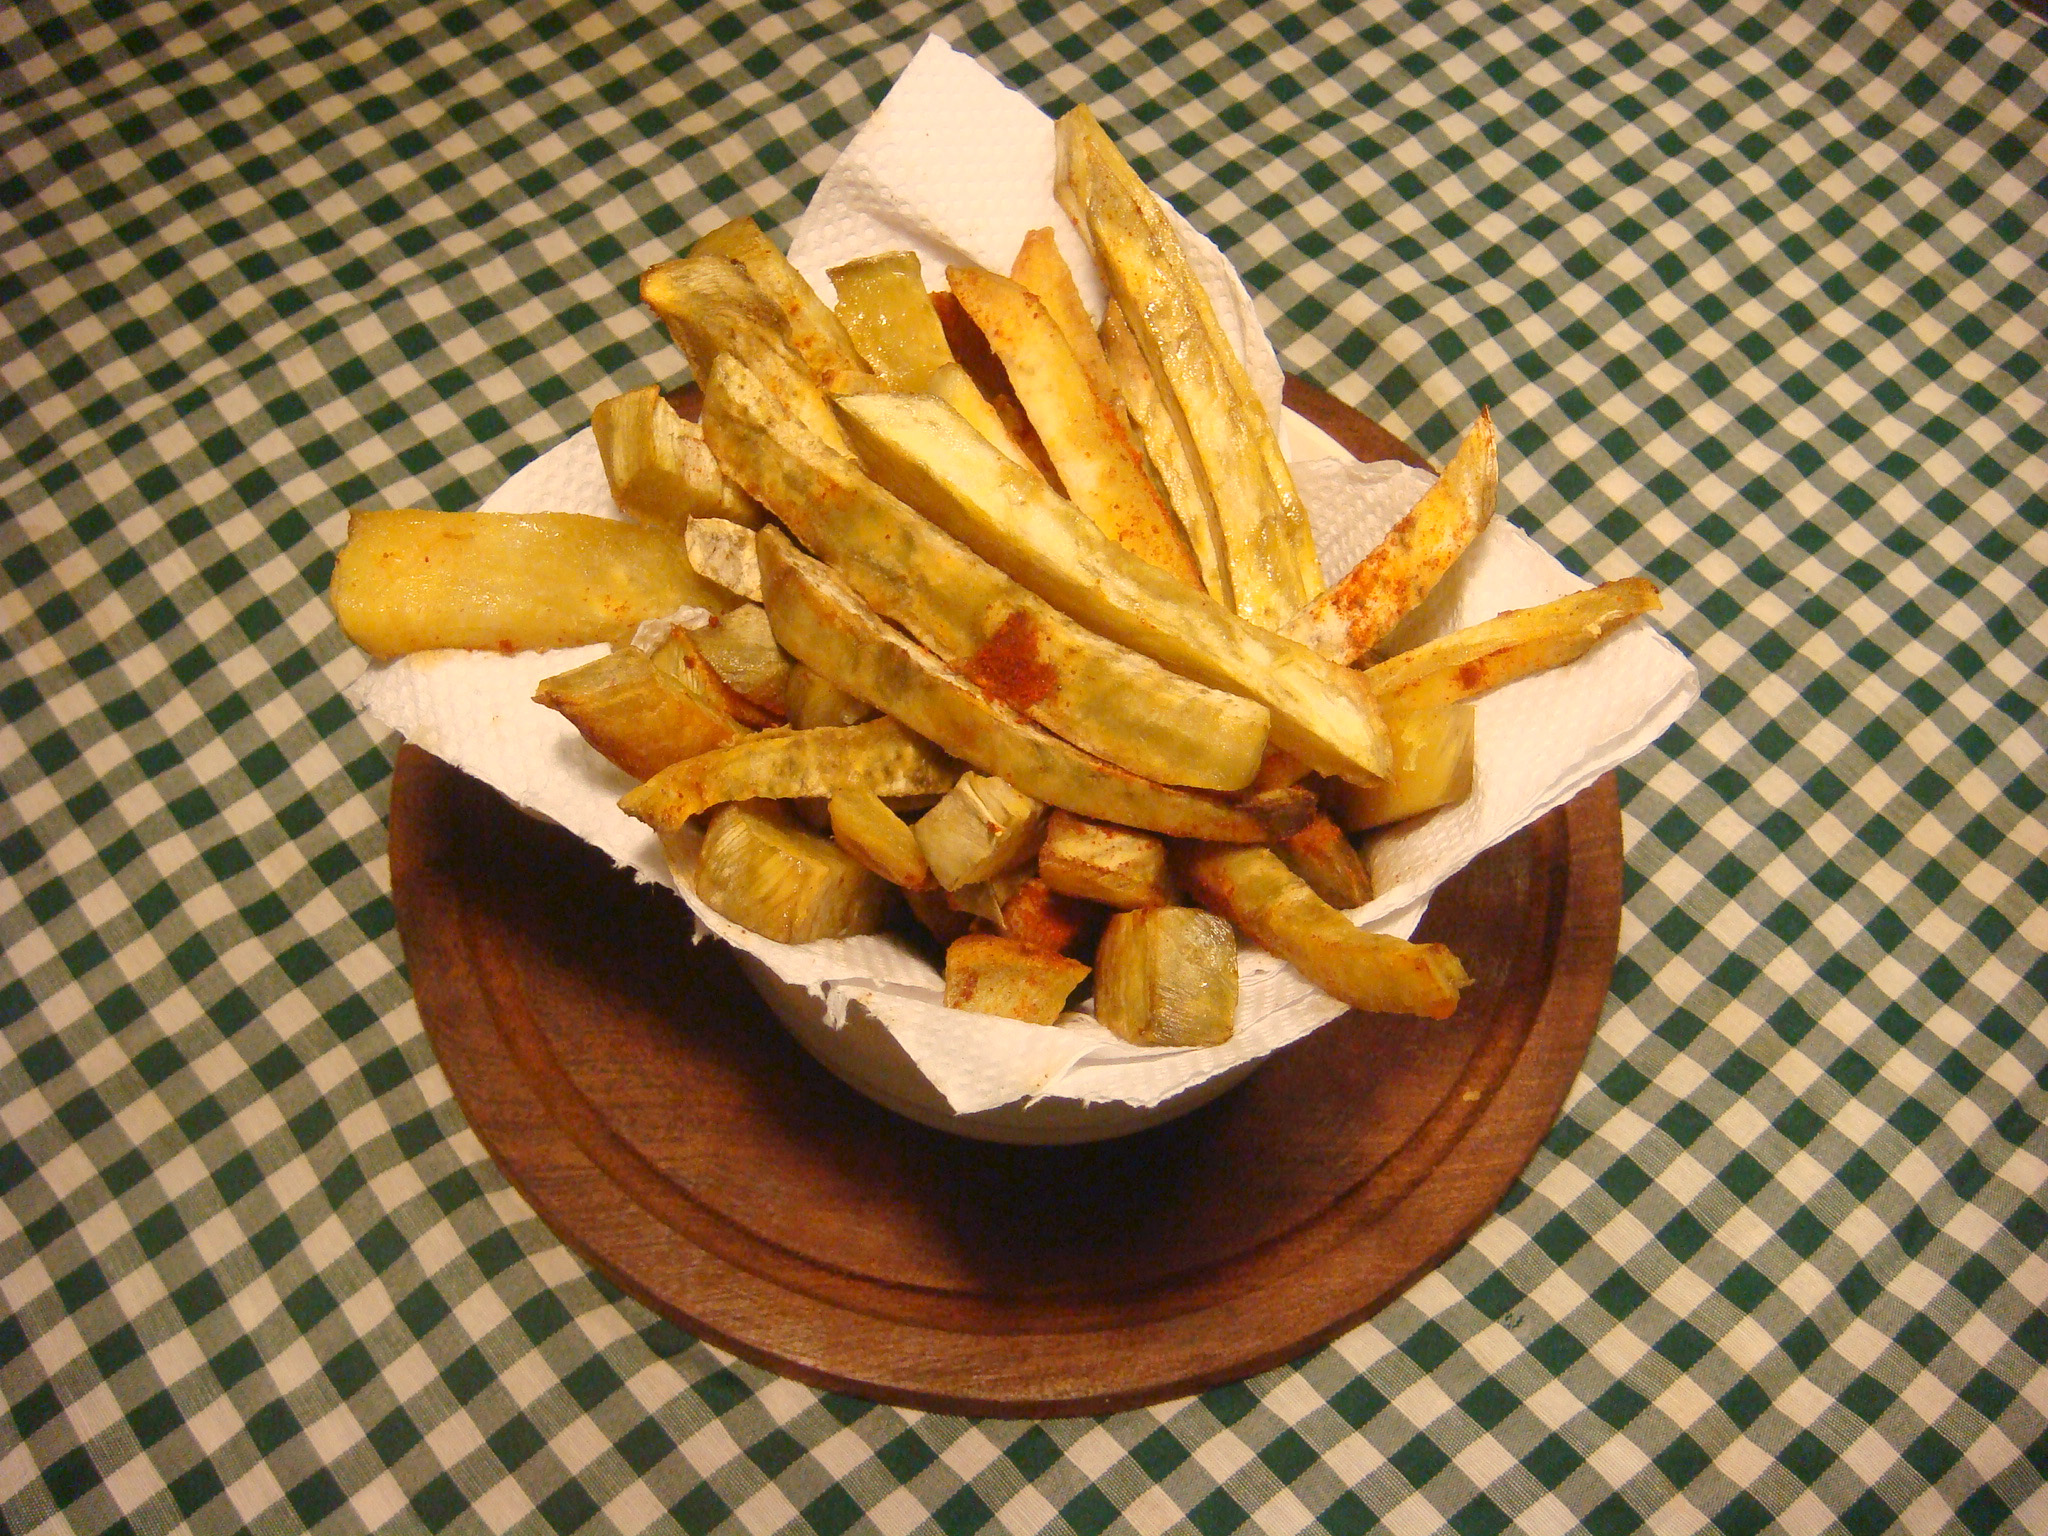 Oven-Baked Sweet Potato Fries - Dish by Dish